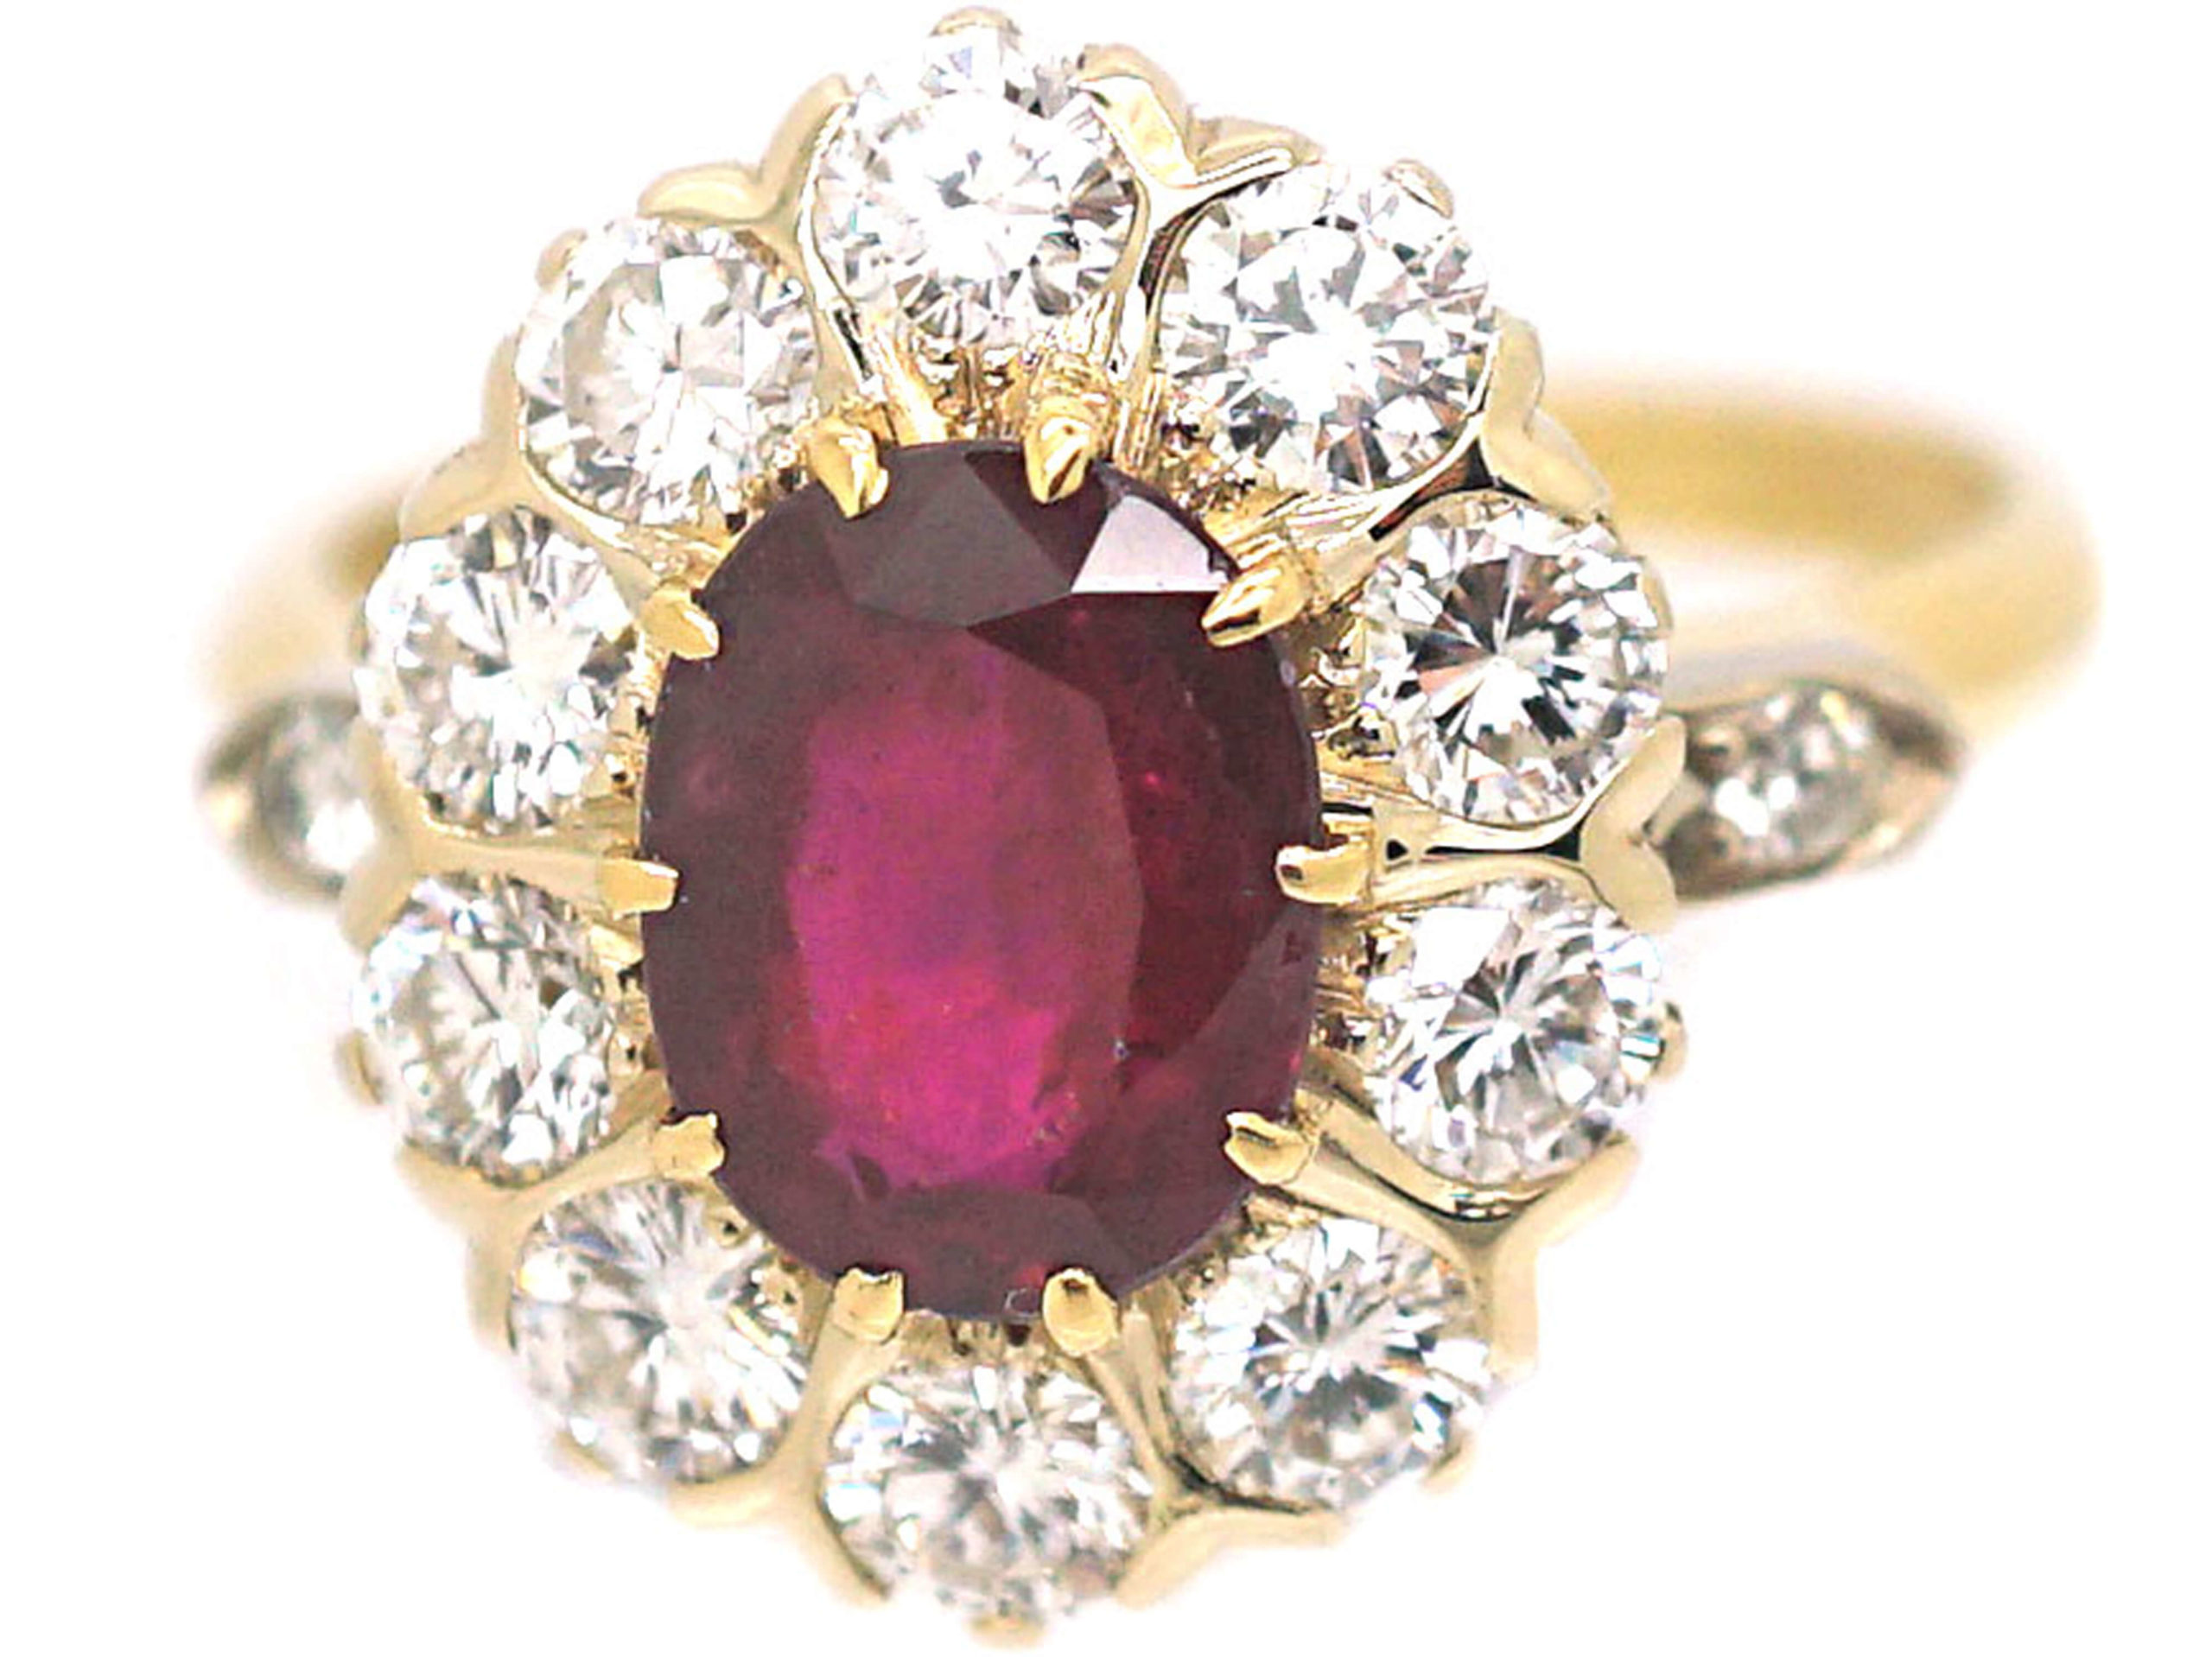 French 18ct Gold, Ruby & Diamond Cluster Ring with Diamond Set Shoulders